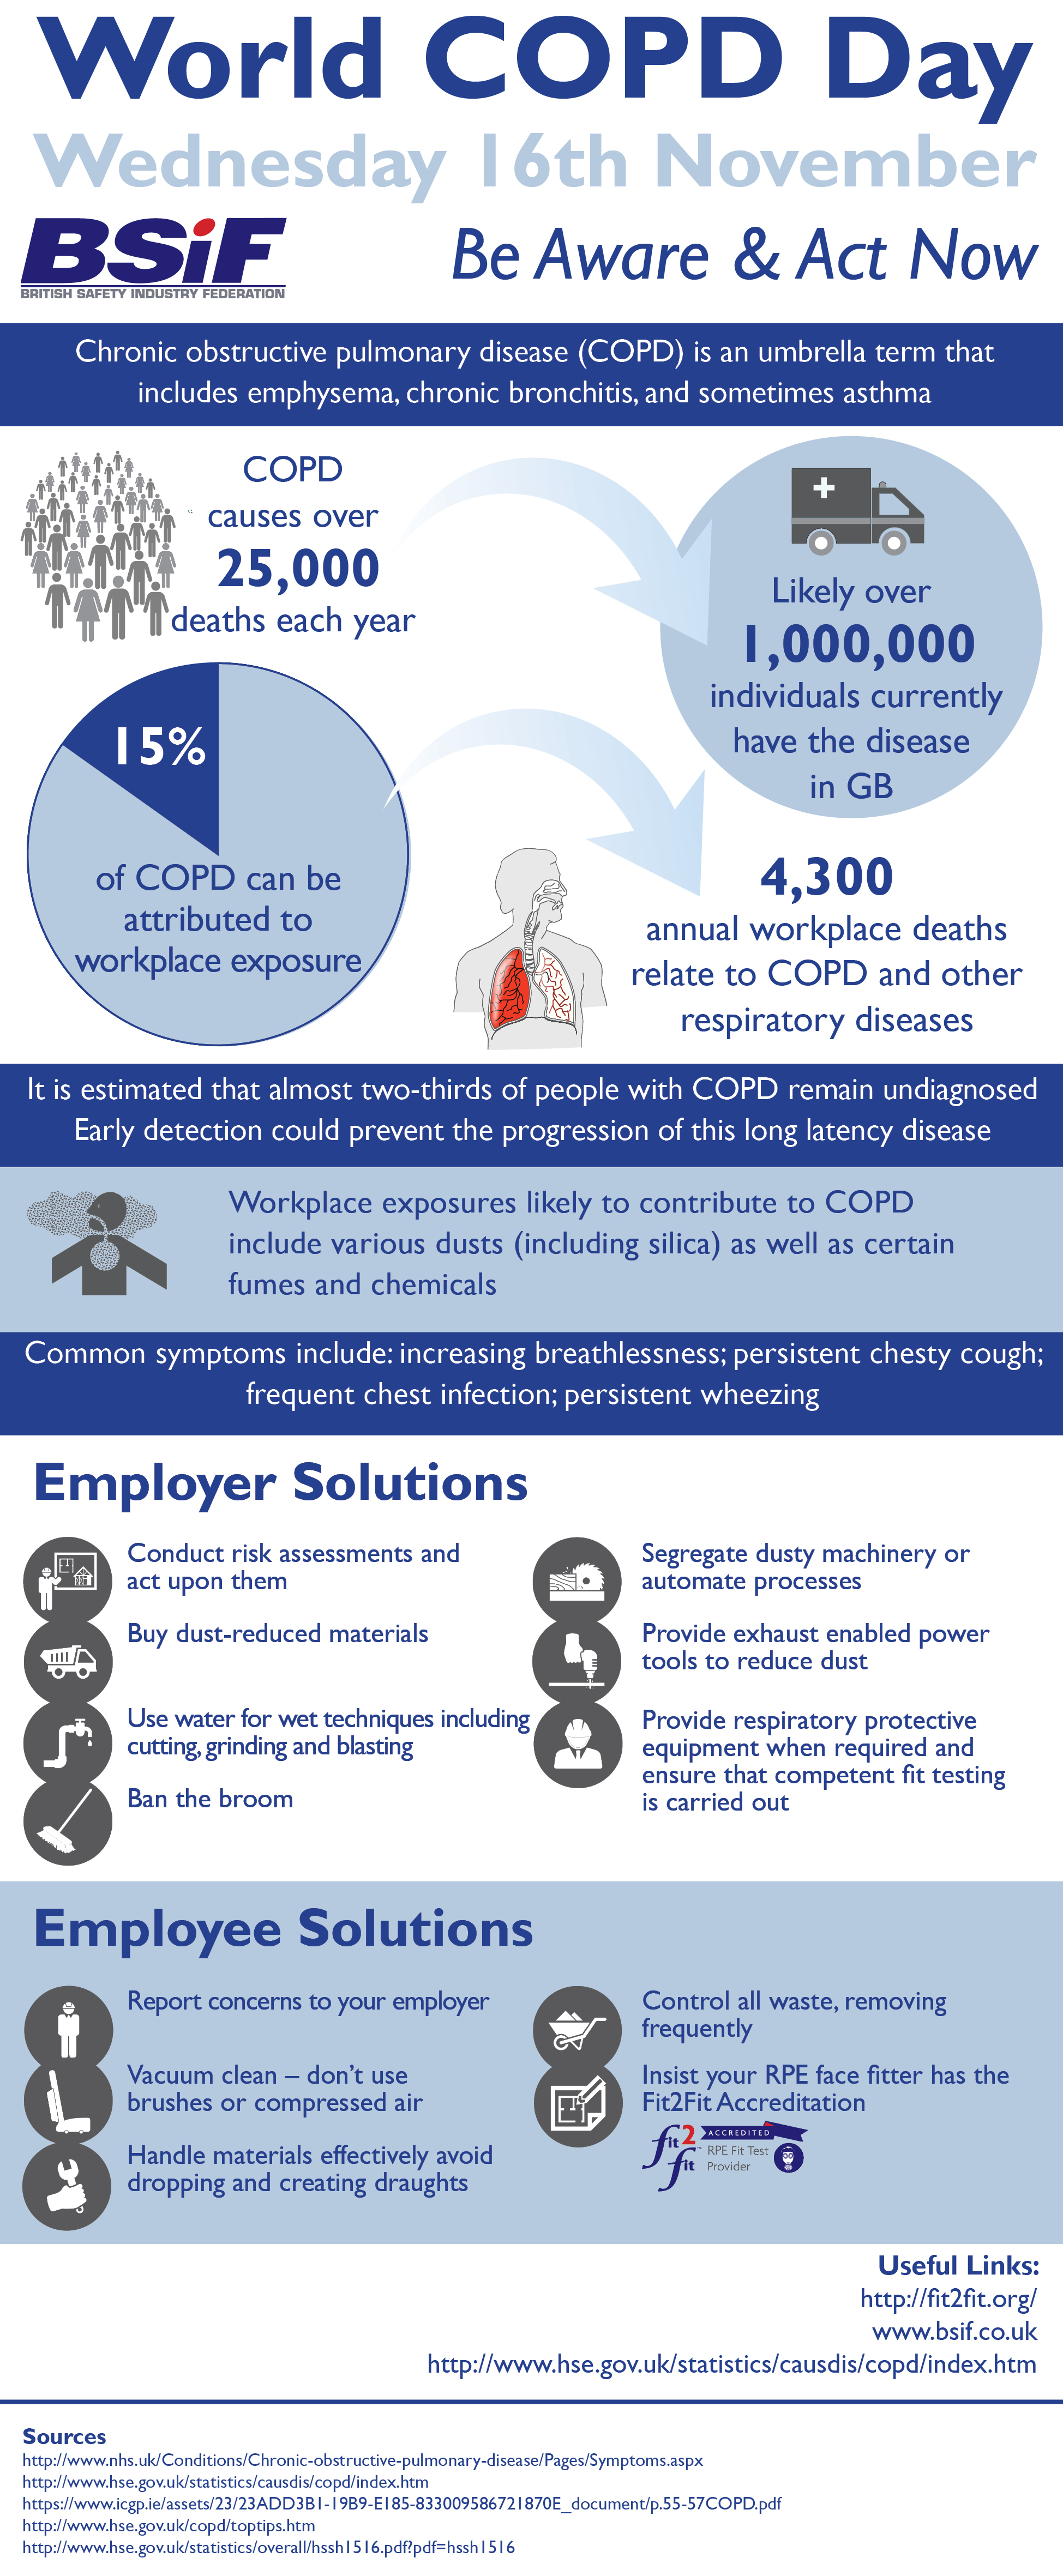 World COPD Day 2016